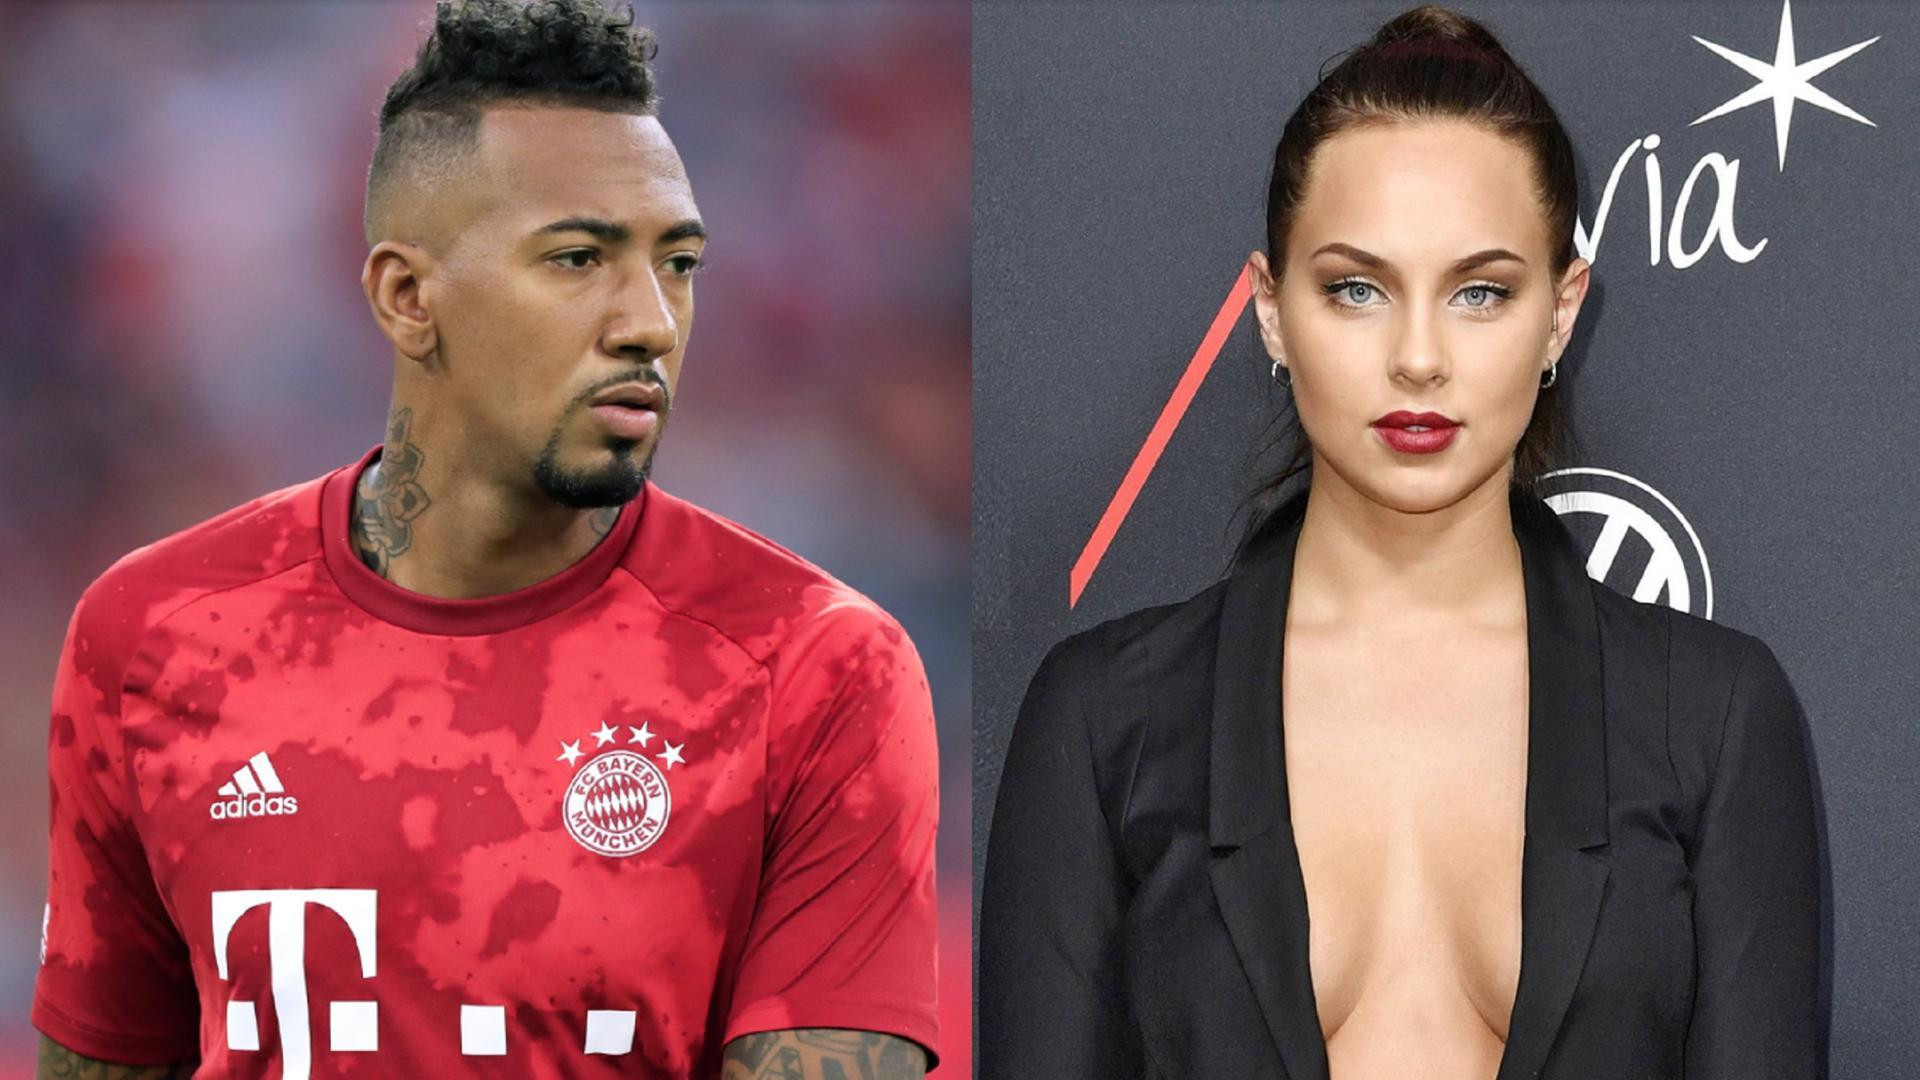 Bayern Munich star, Jerome Boateng under investigation for allegedly tearing model girlfriend Kasia Lenhardt's ear, a year before she killed herself